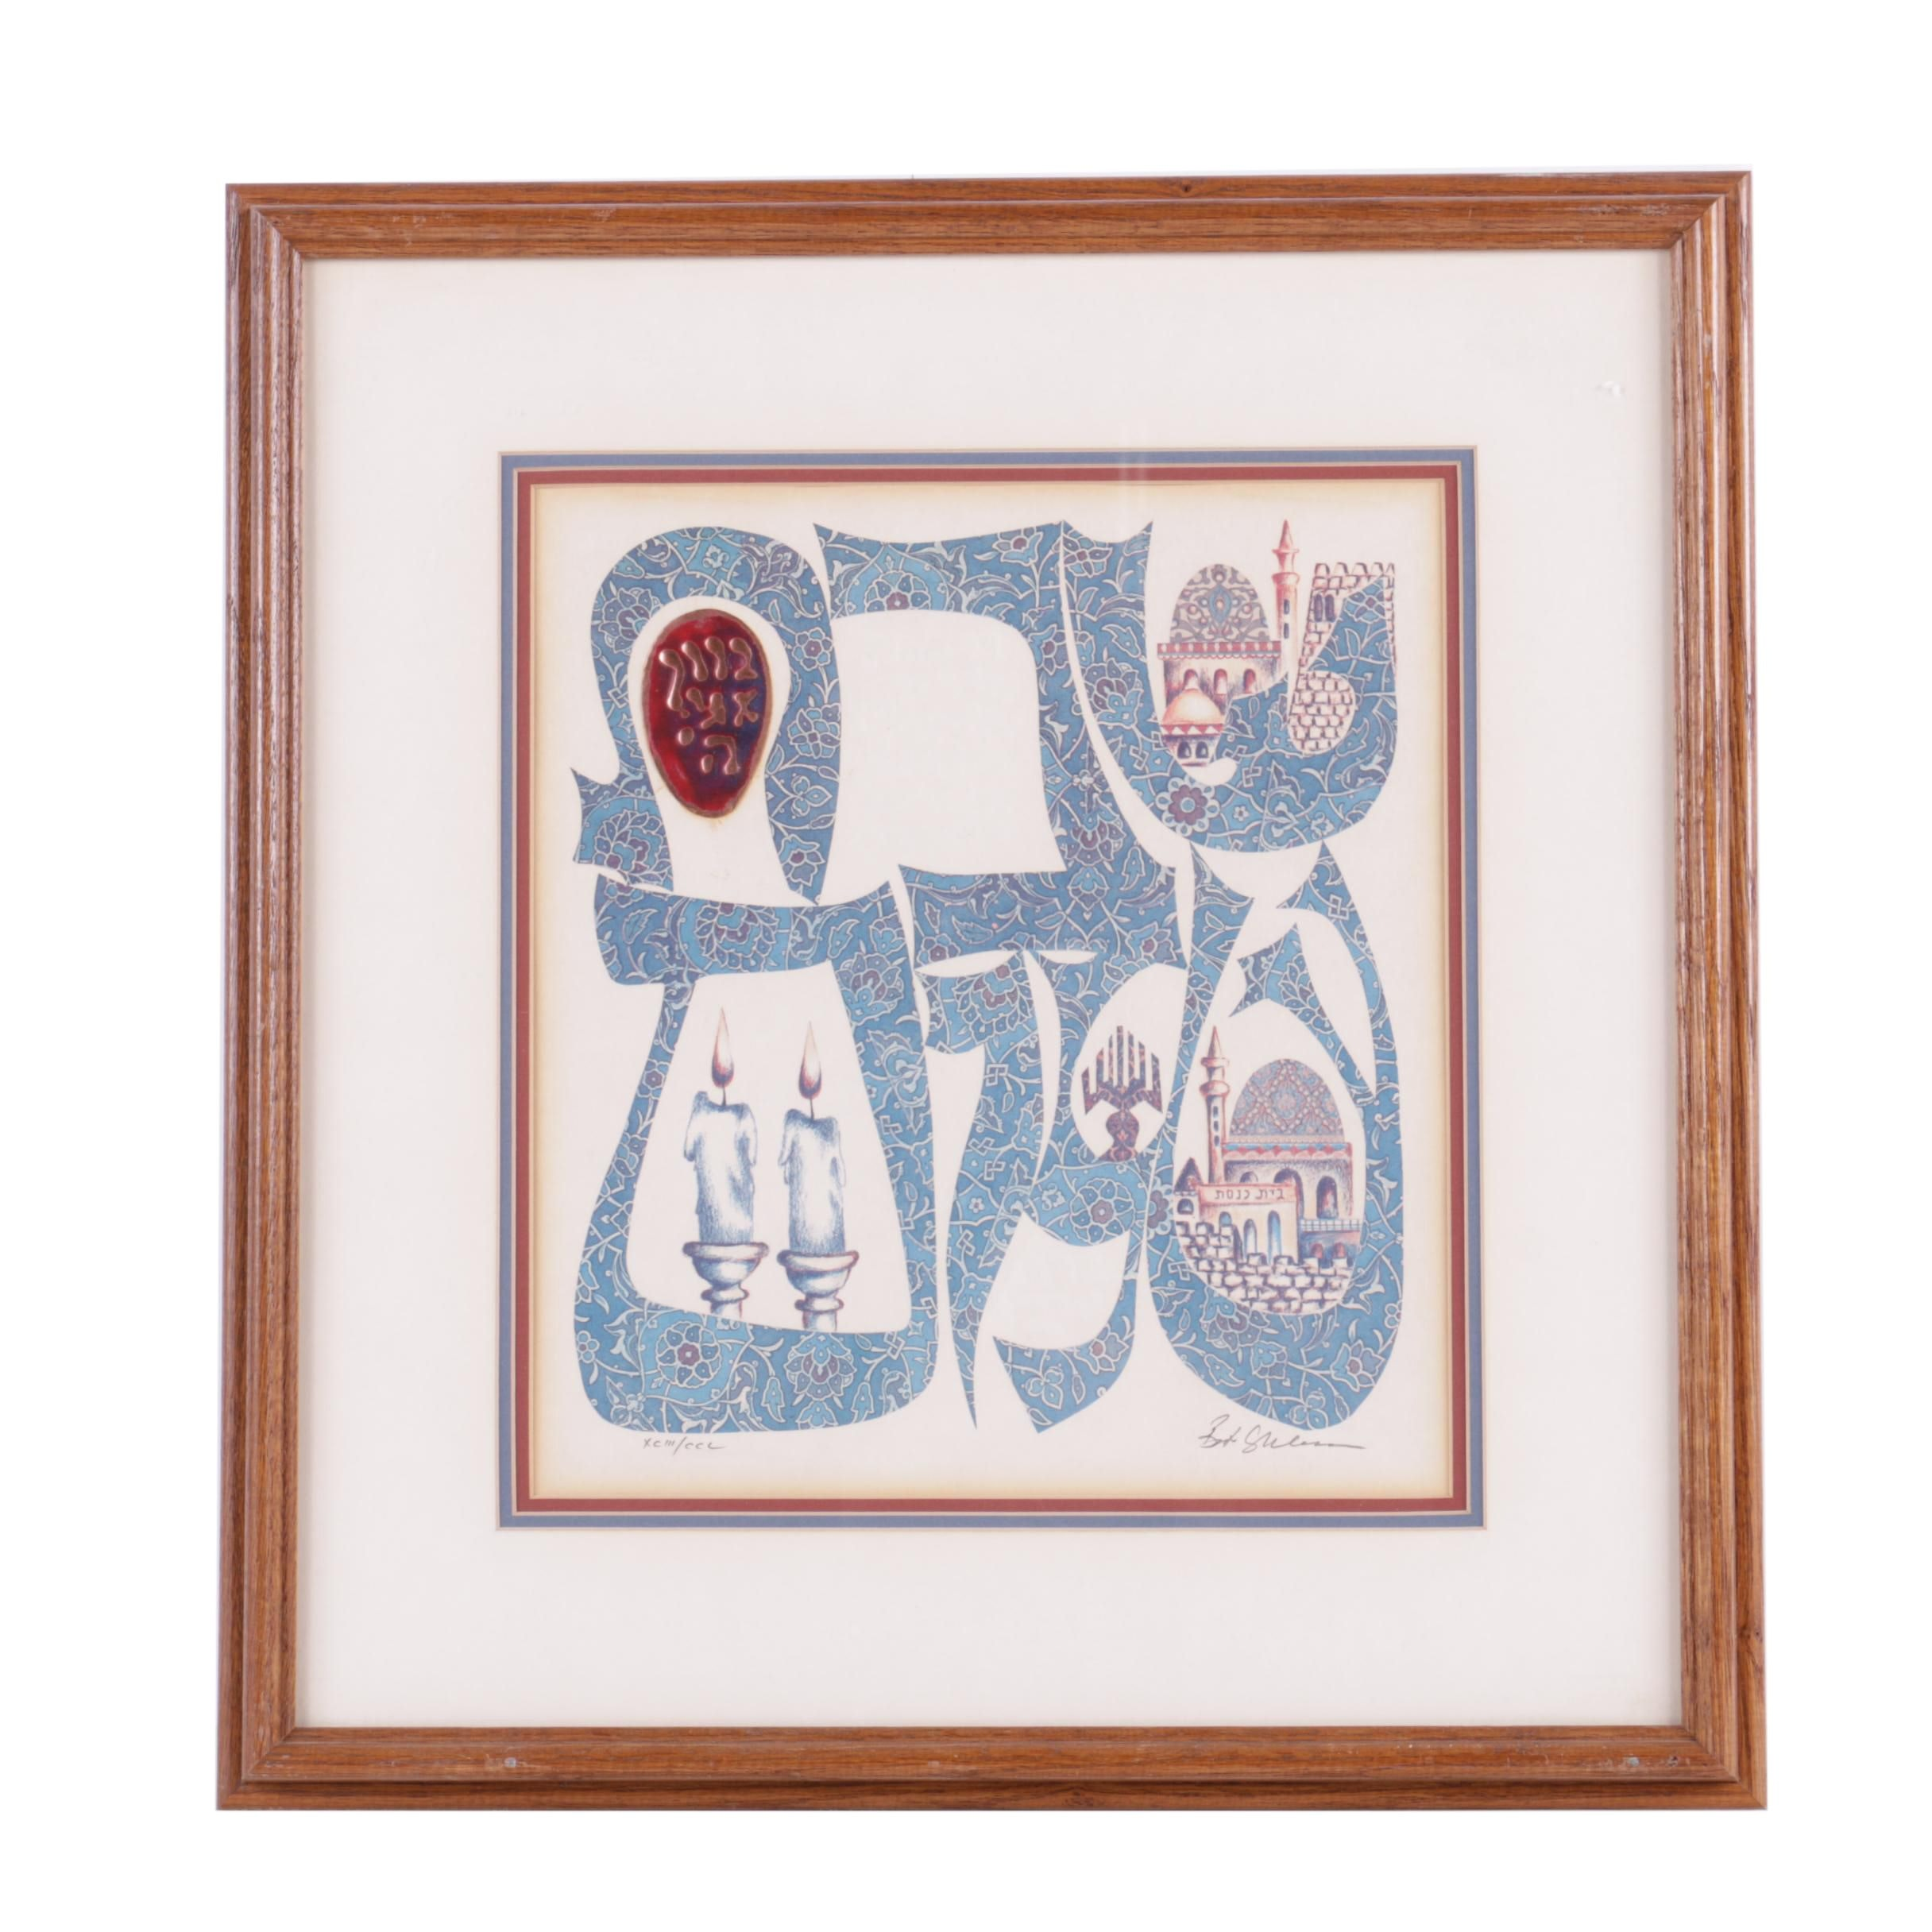 Judaica Embellished Offset Lithograph on Paper